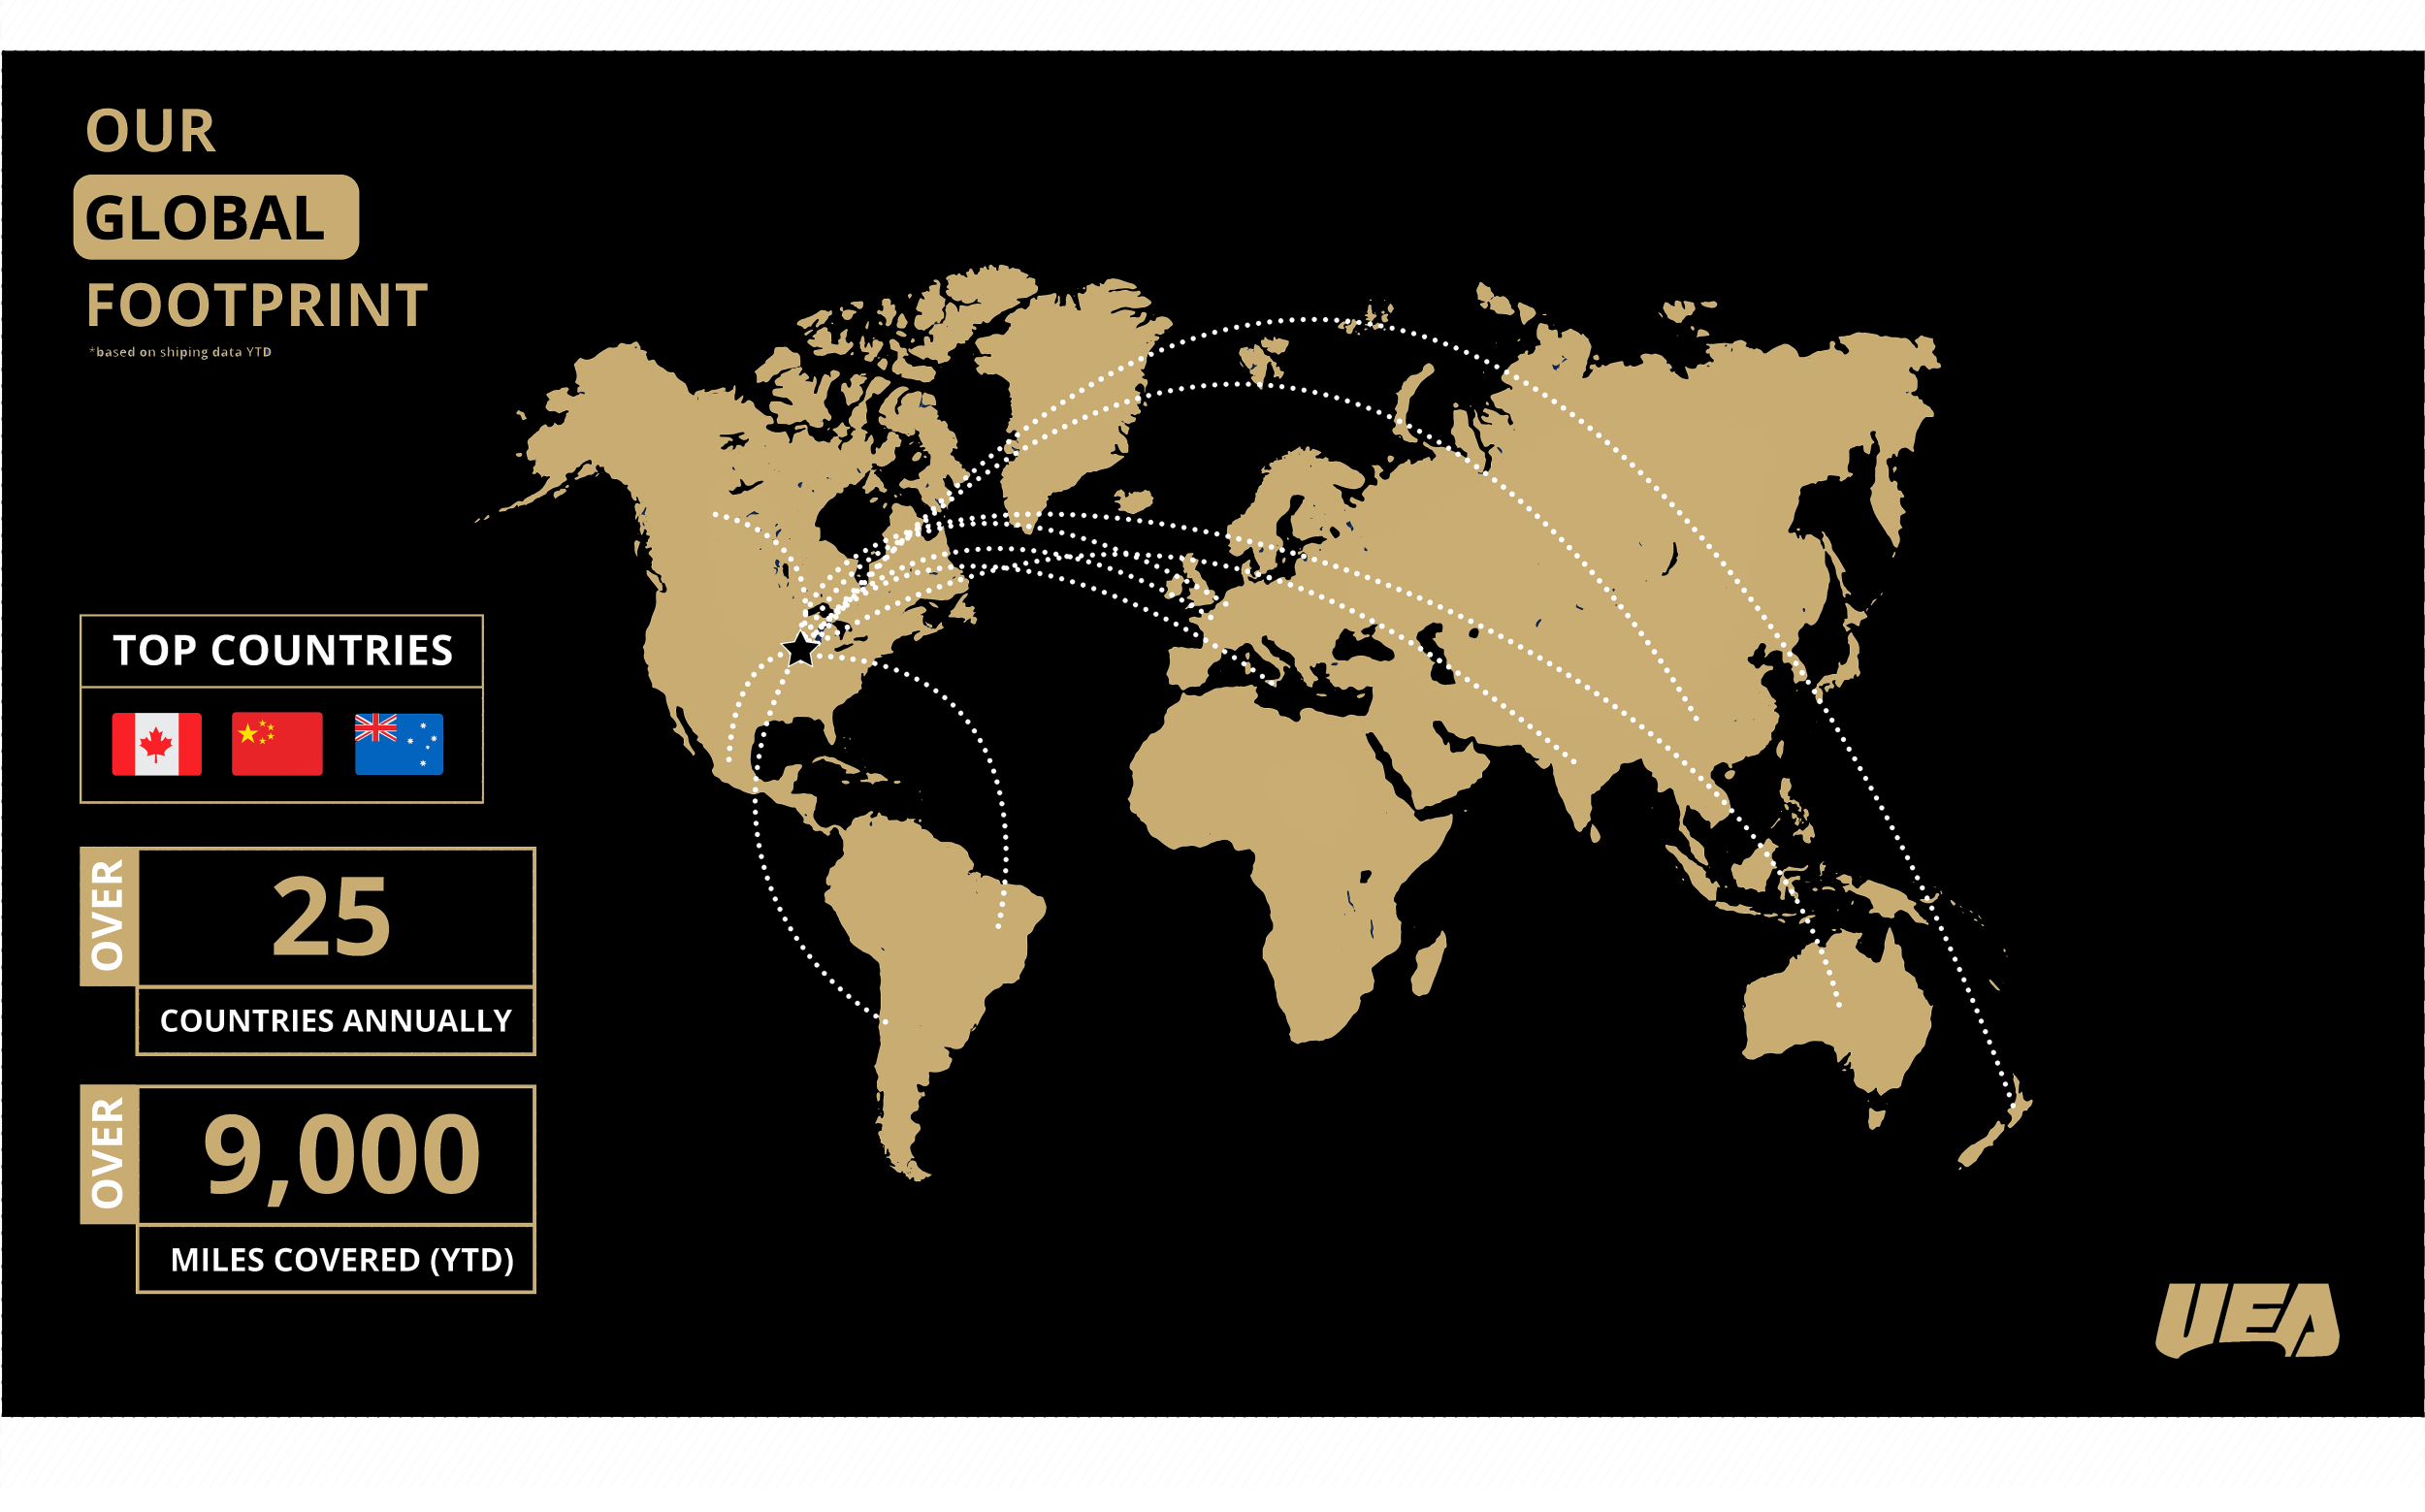 UEA Global Footprint